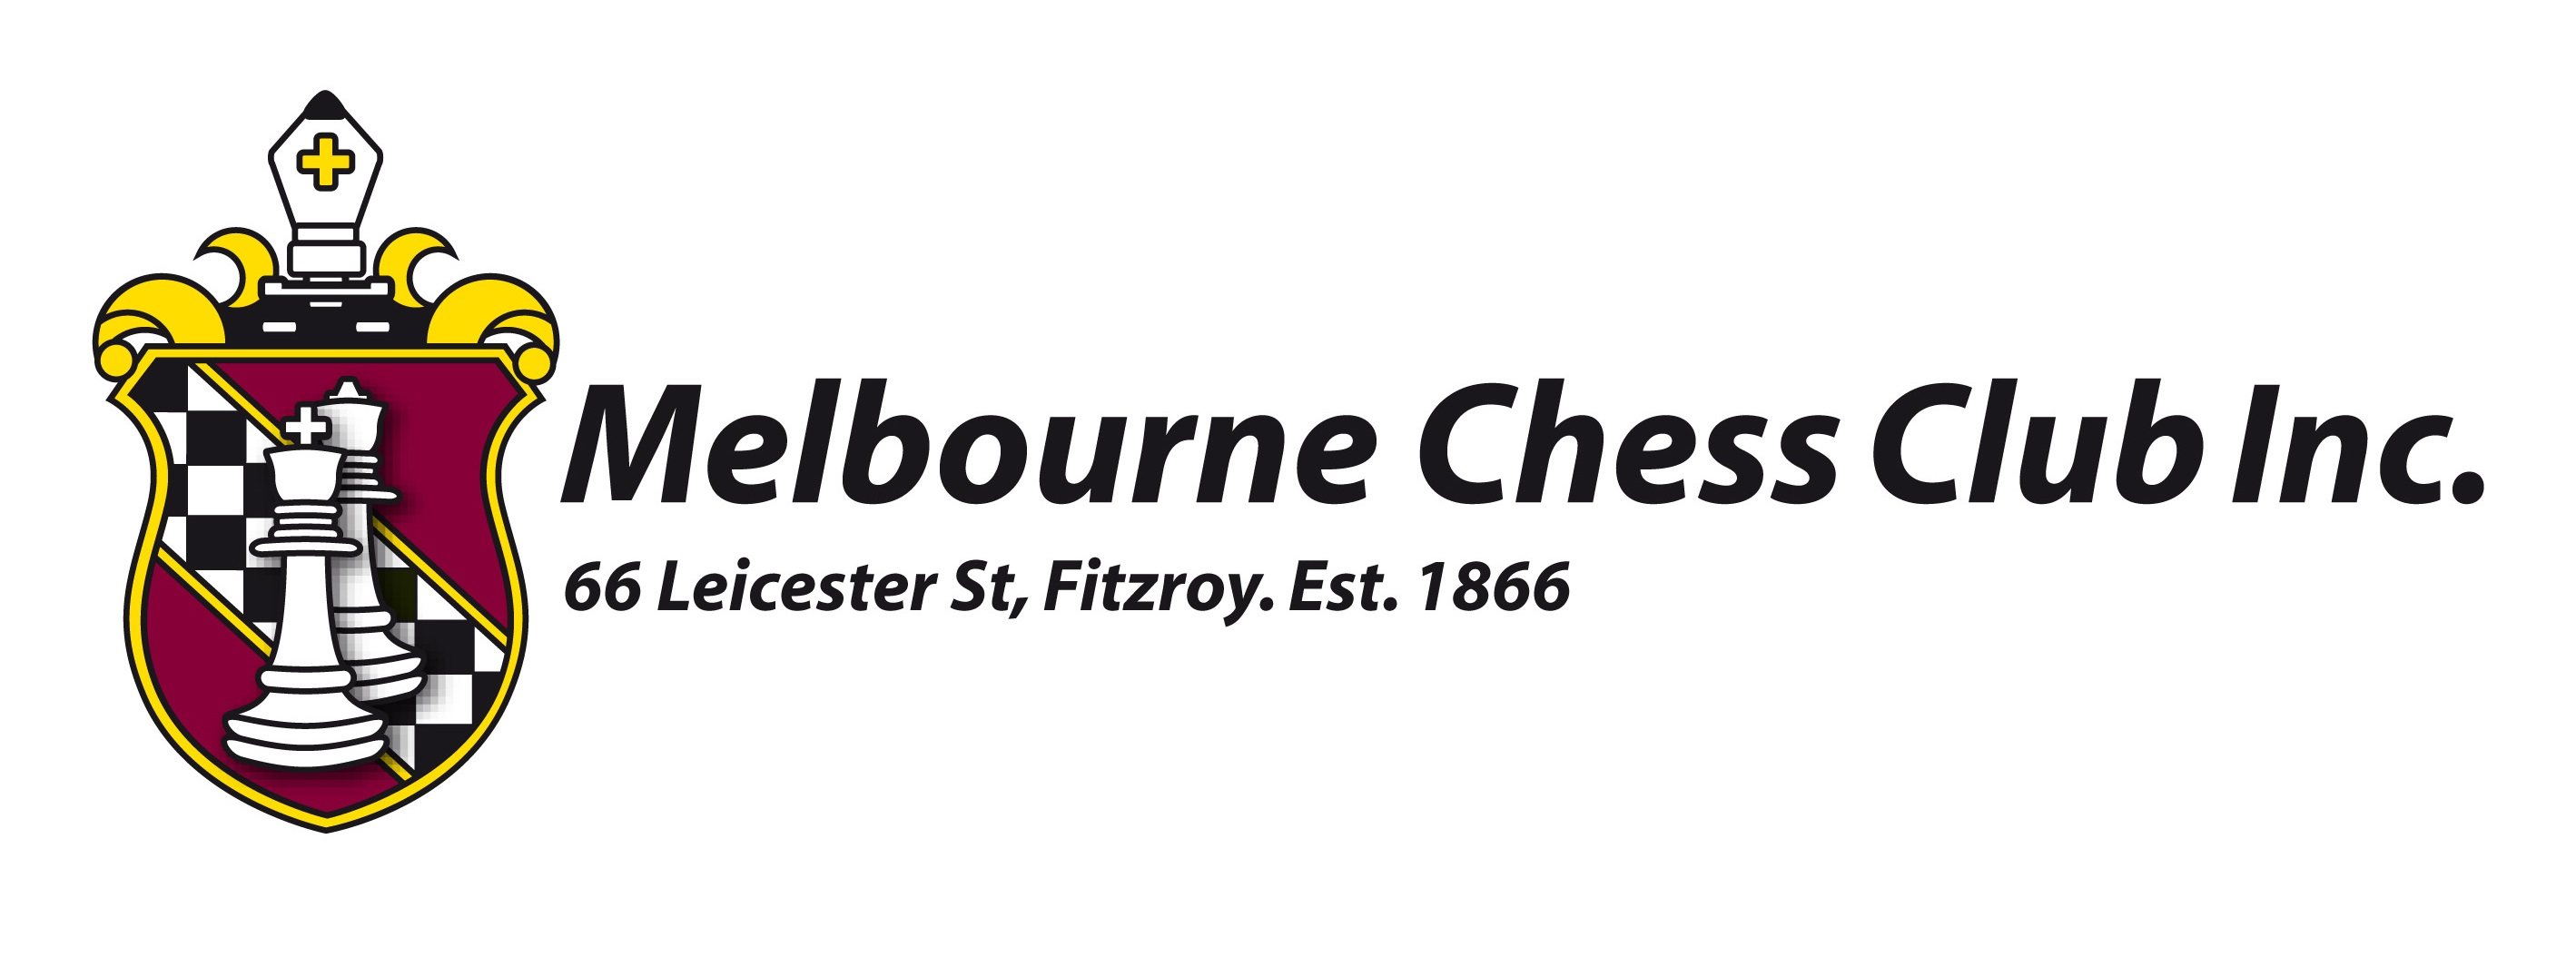 Melbourne Chess Club